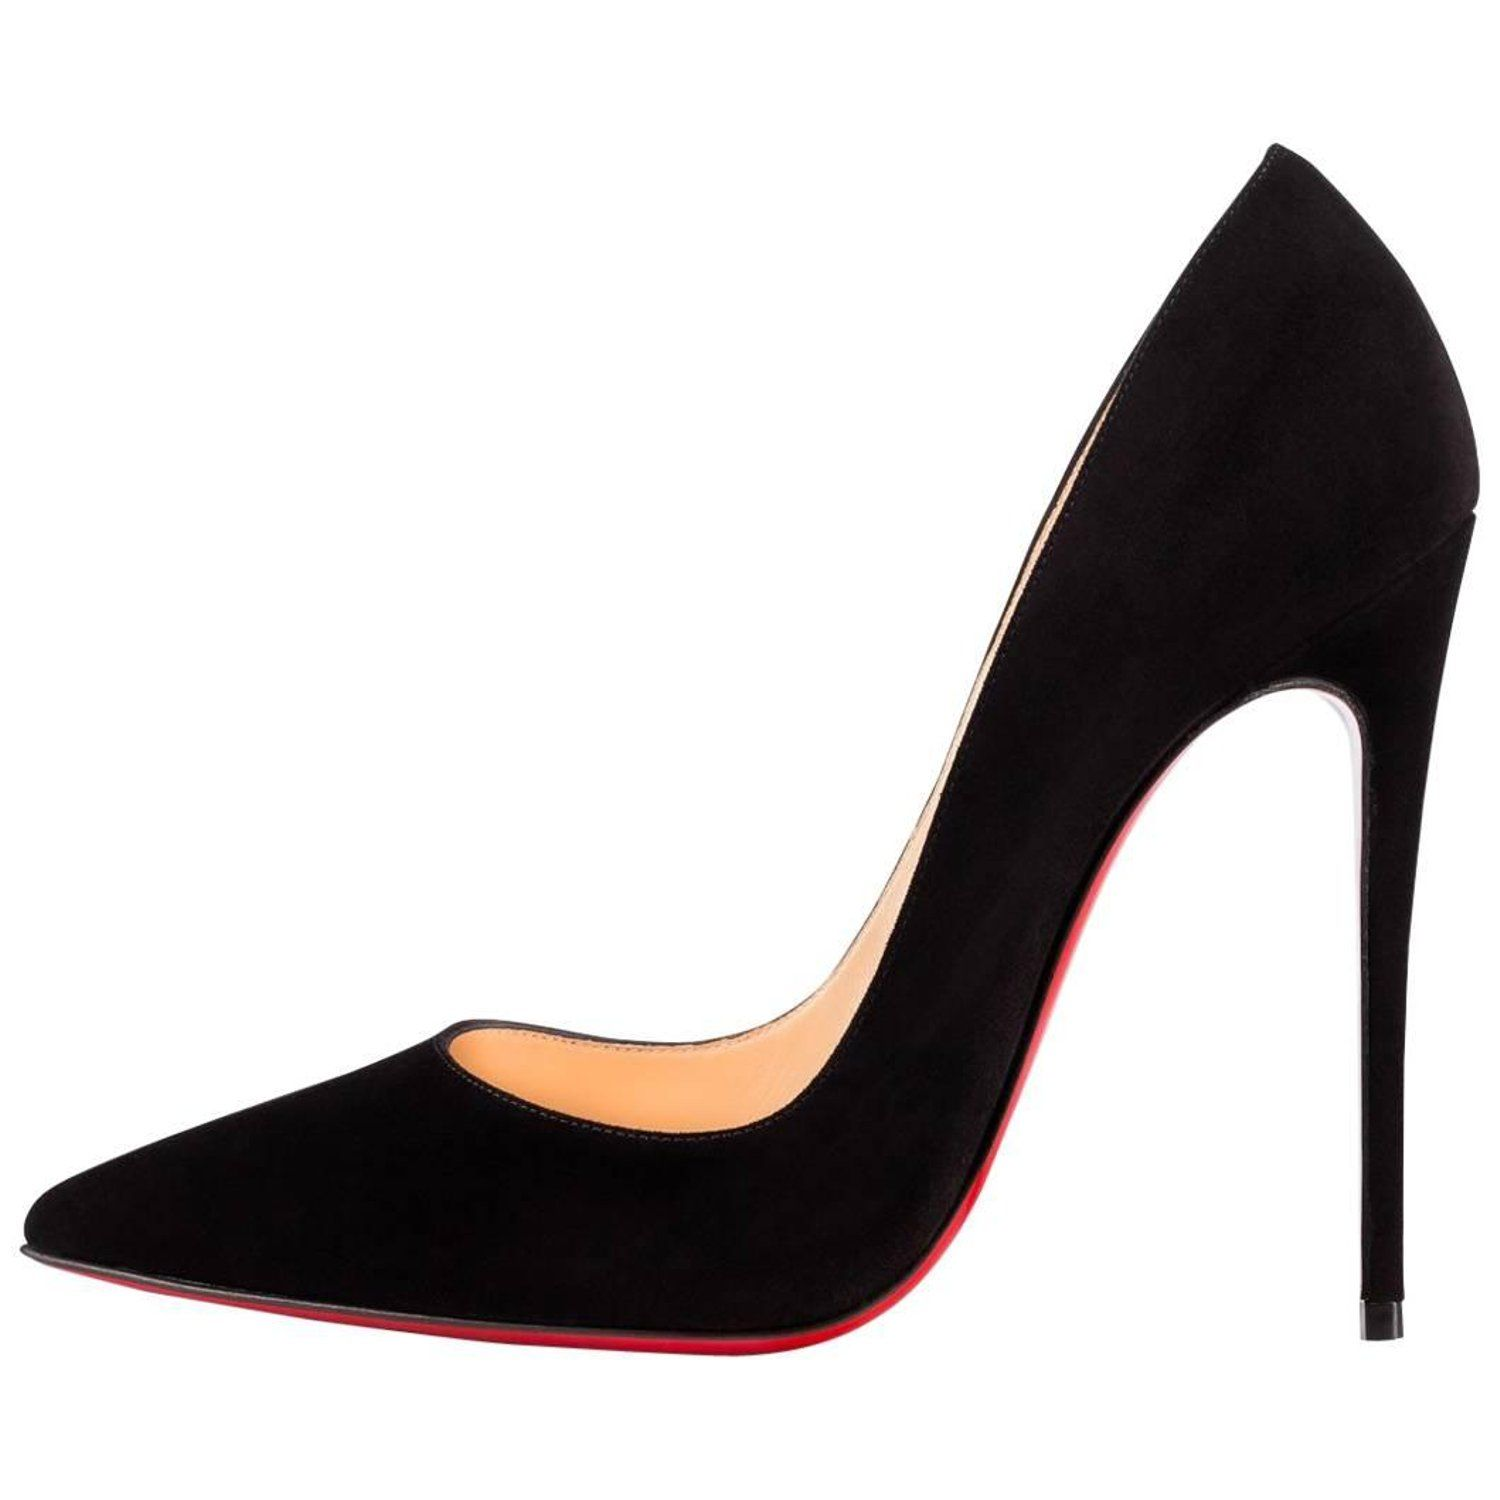 02bf81a22dac Christian Louboutin New Black Suede SO Kate Evening High Heels Pumps in Box